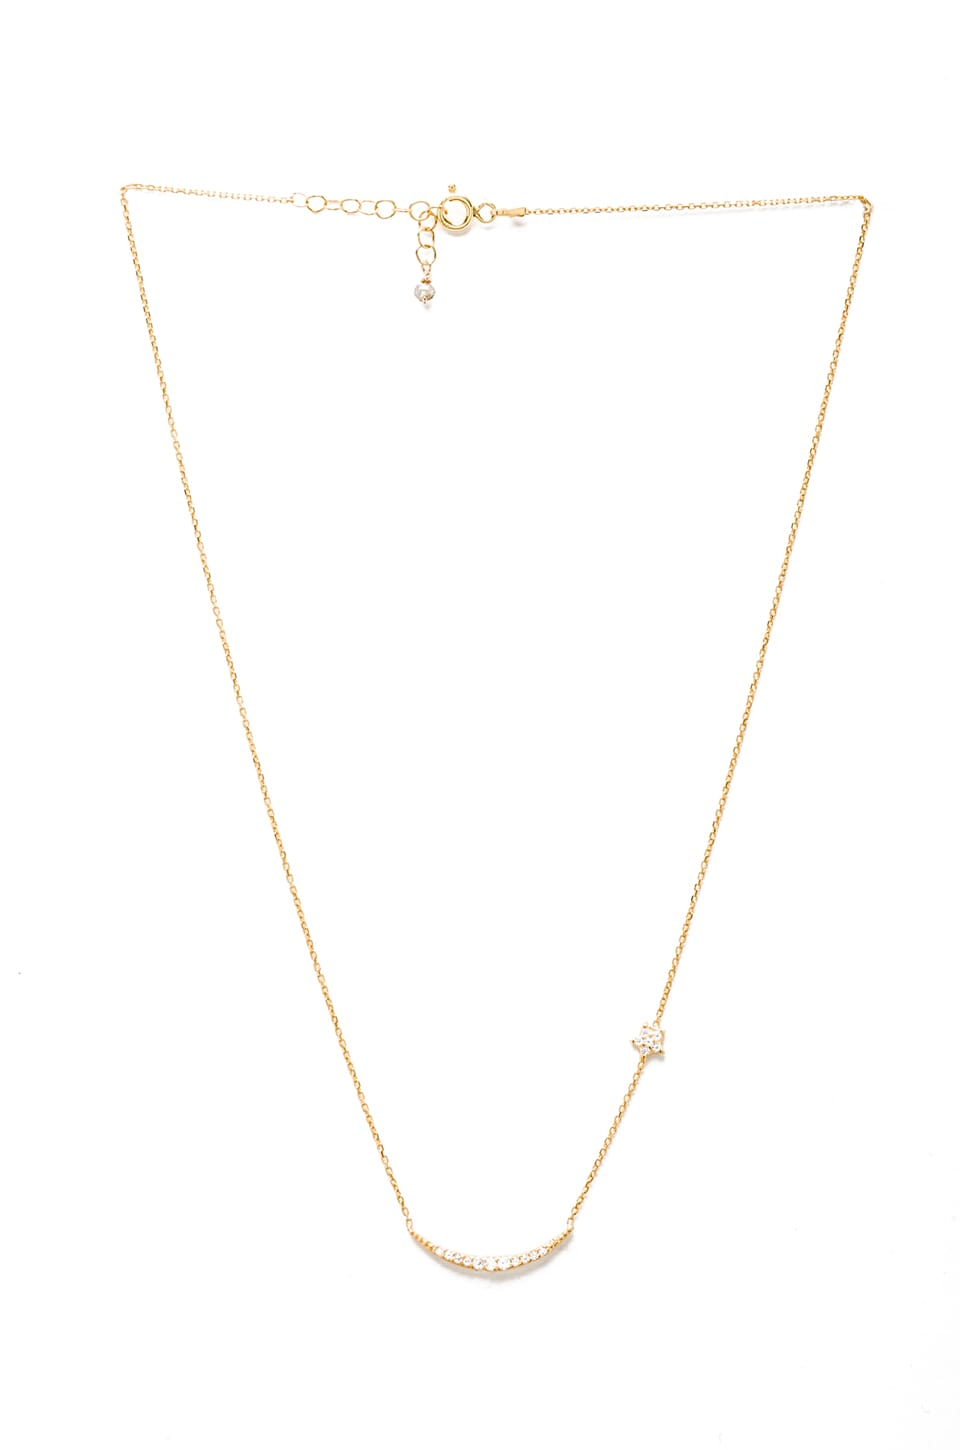 Natalie B Jewelry Natalie B Ottoman Moon and Star Necklace in Gold